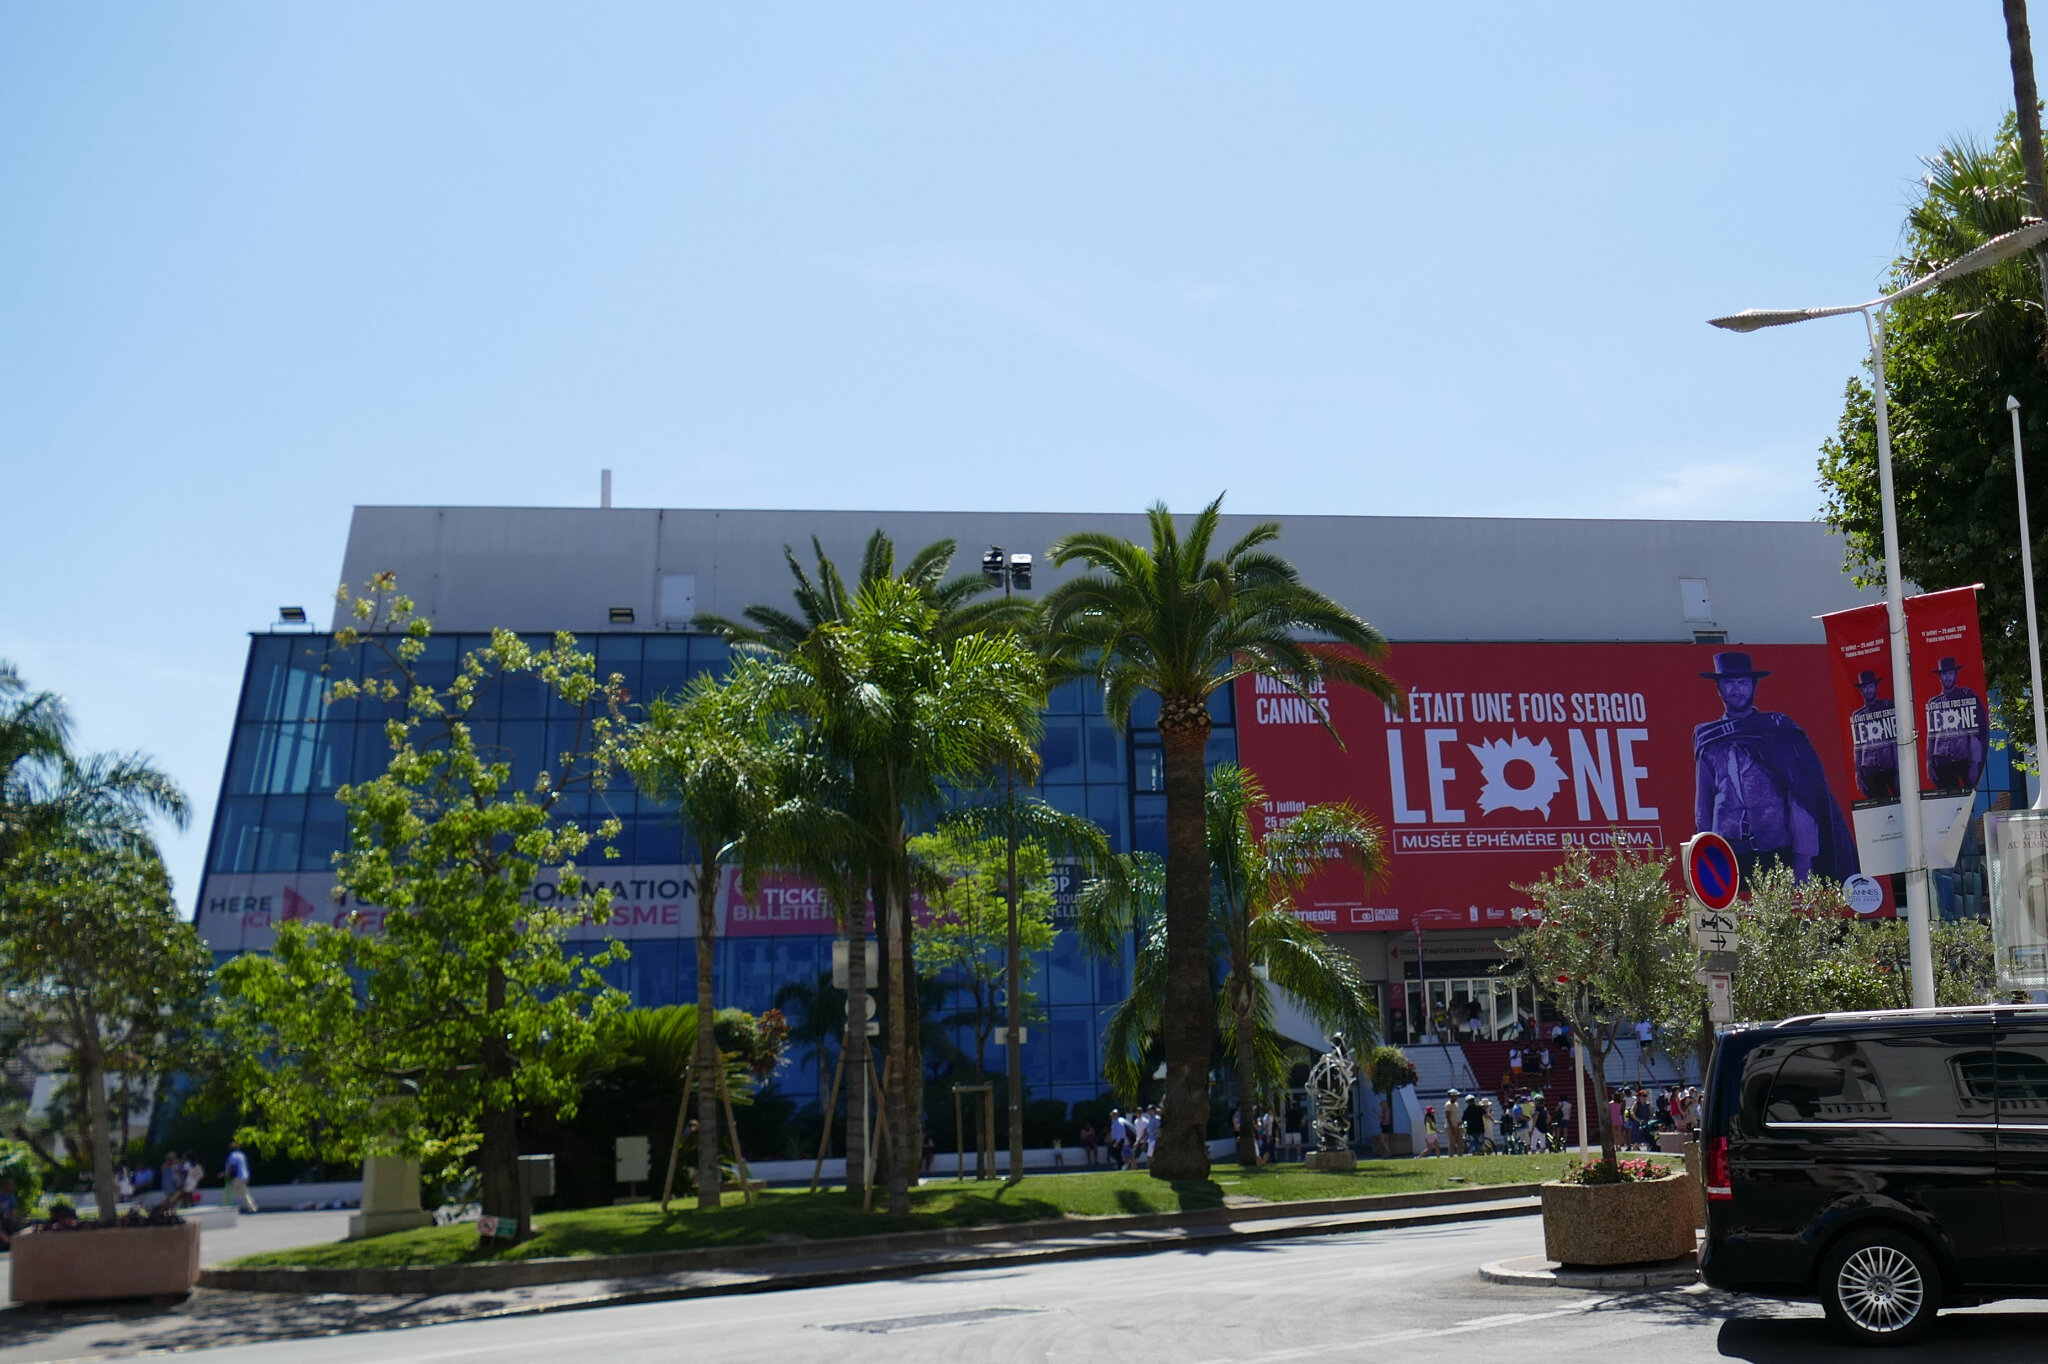 07 16 CANNES (20)